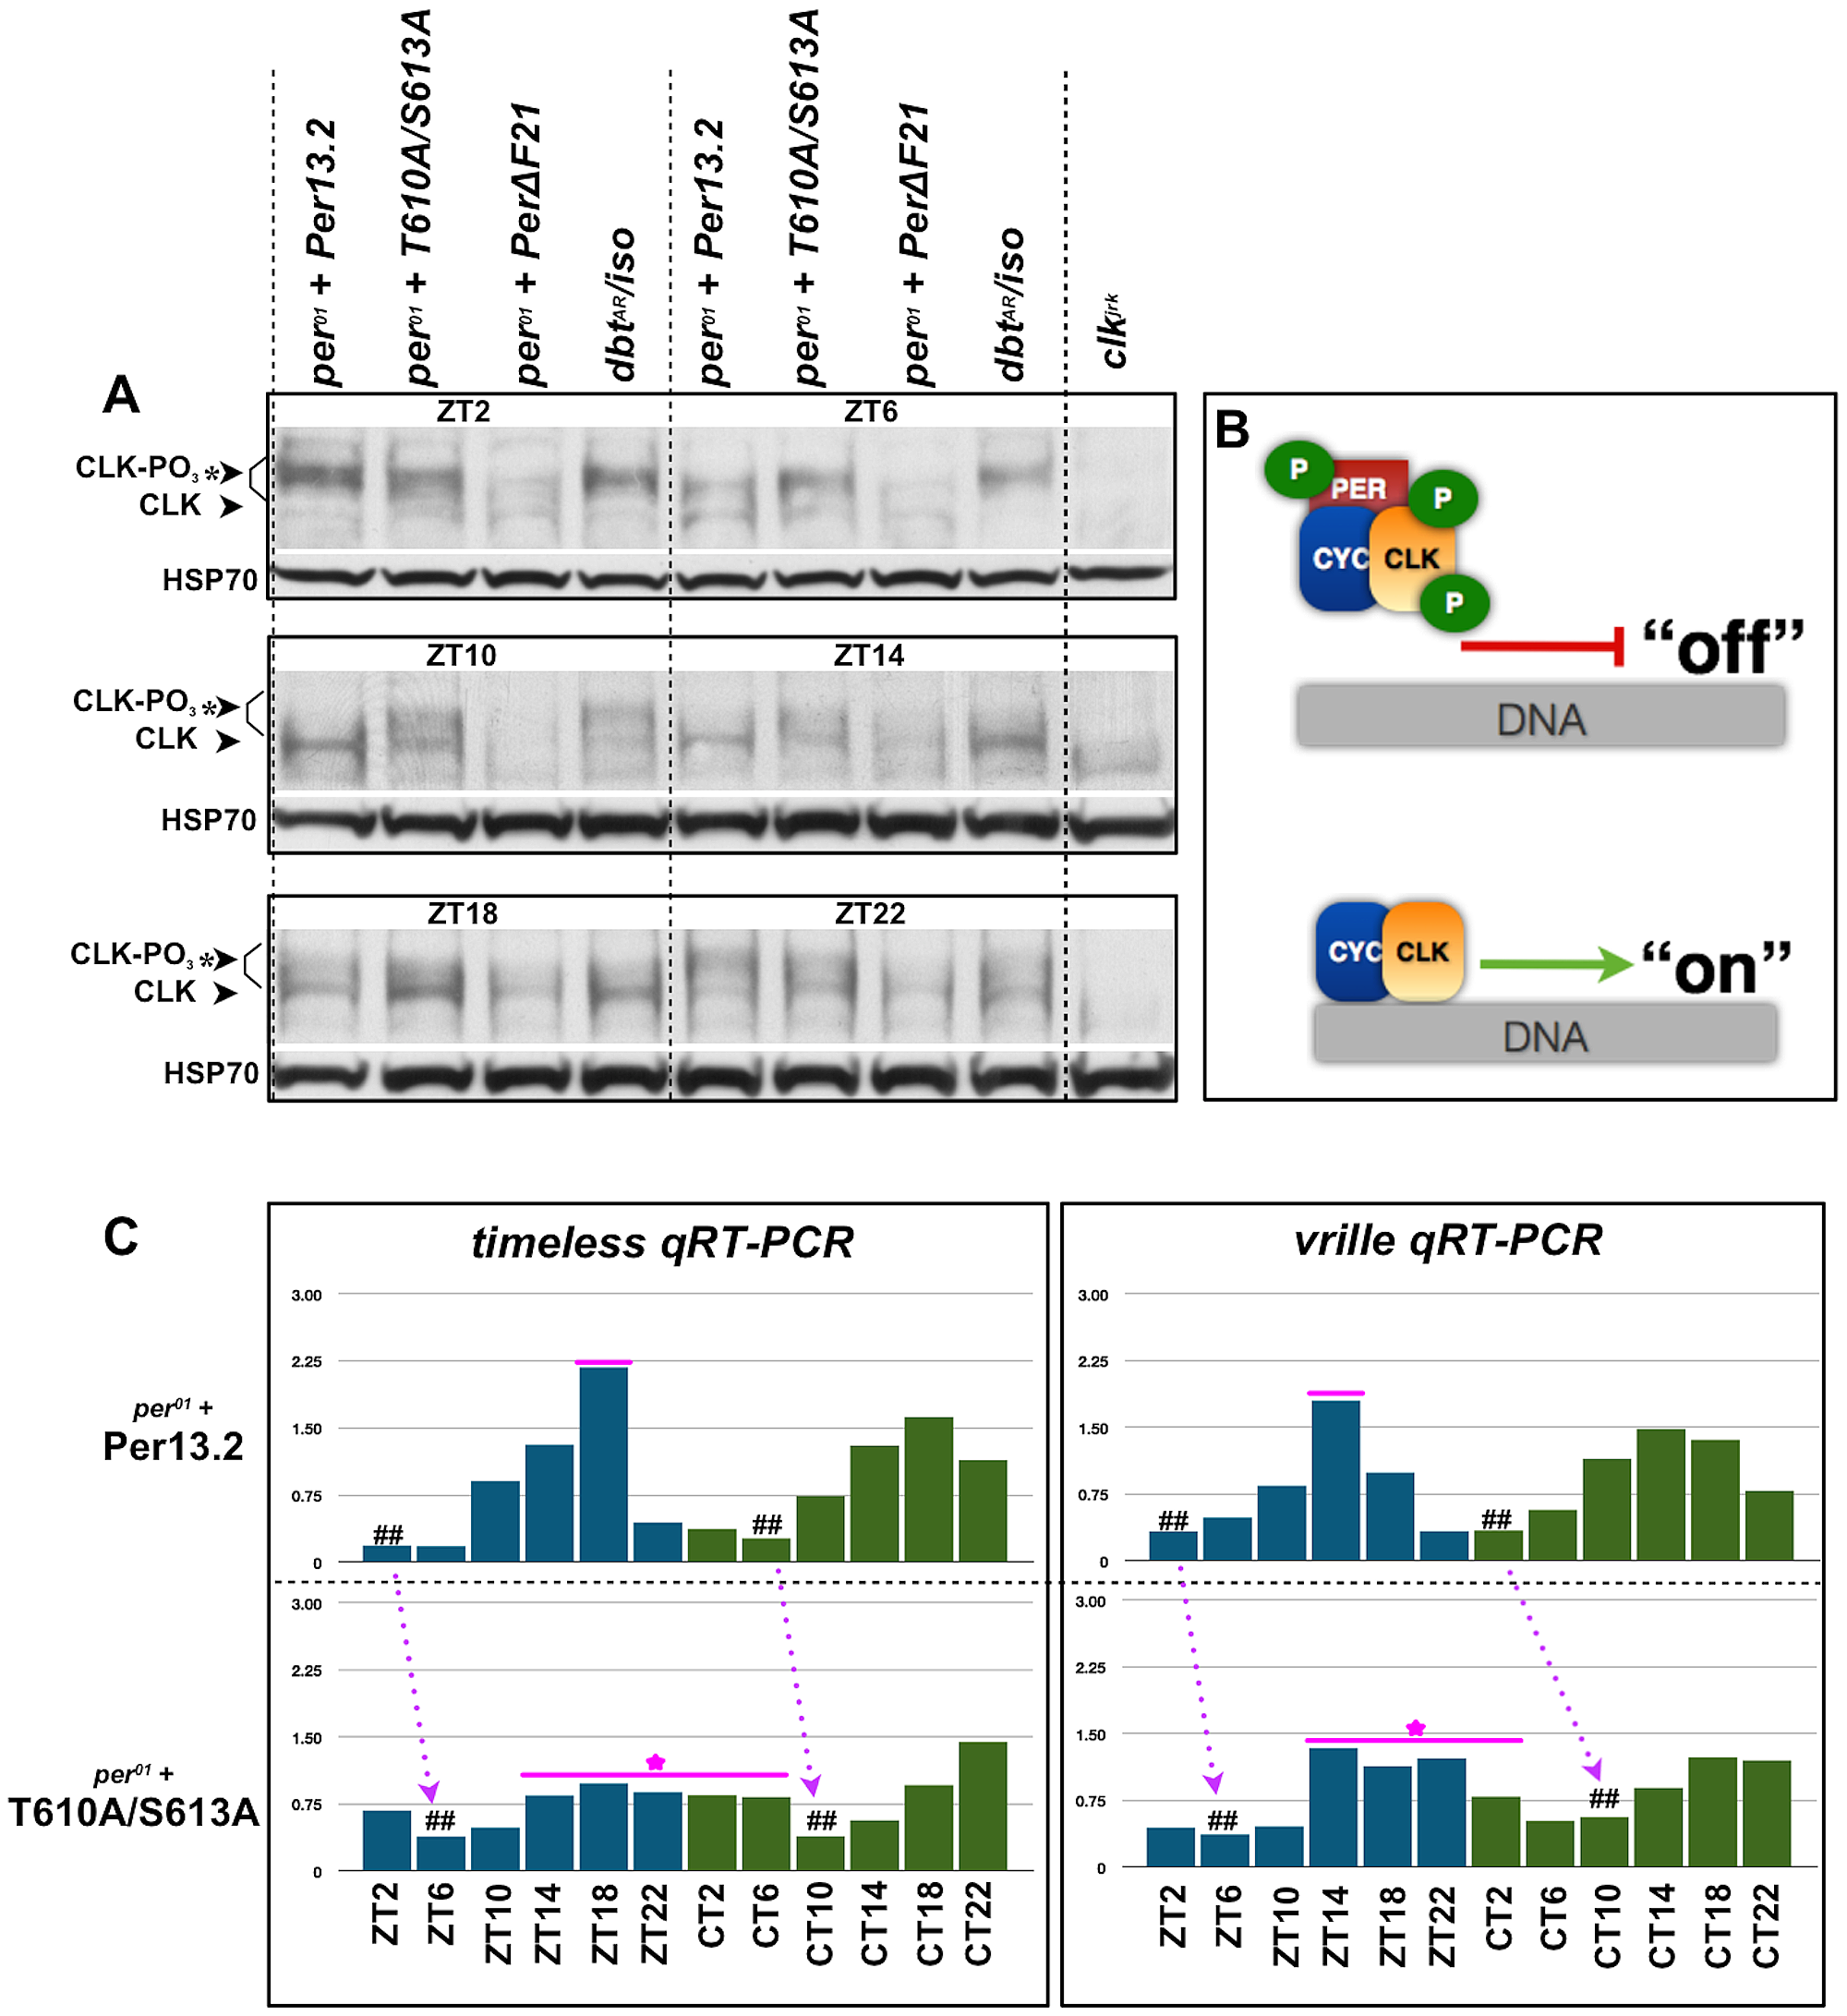 The T610 and S613 mutations affect CLK phosphorylation and CLK-mediated transcriptional output.